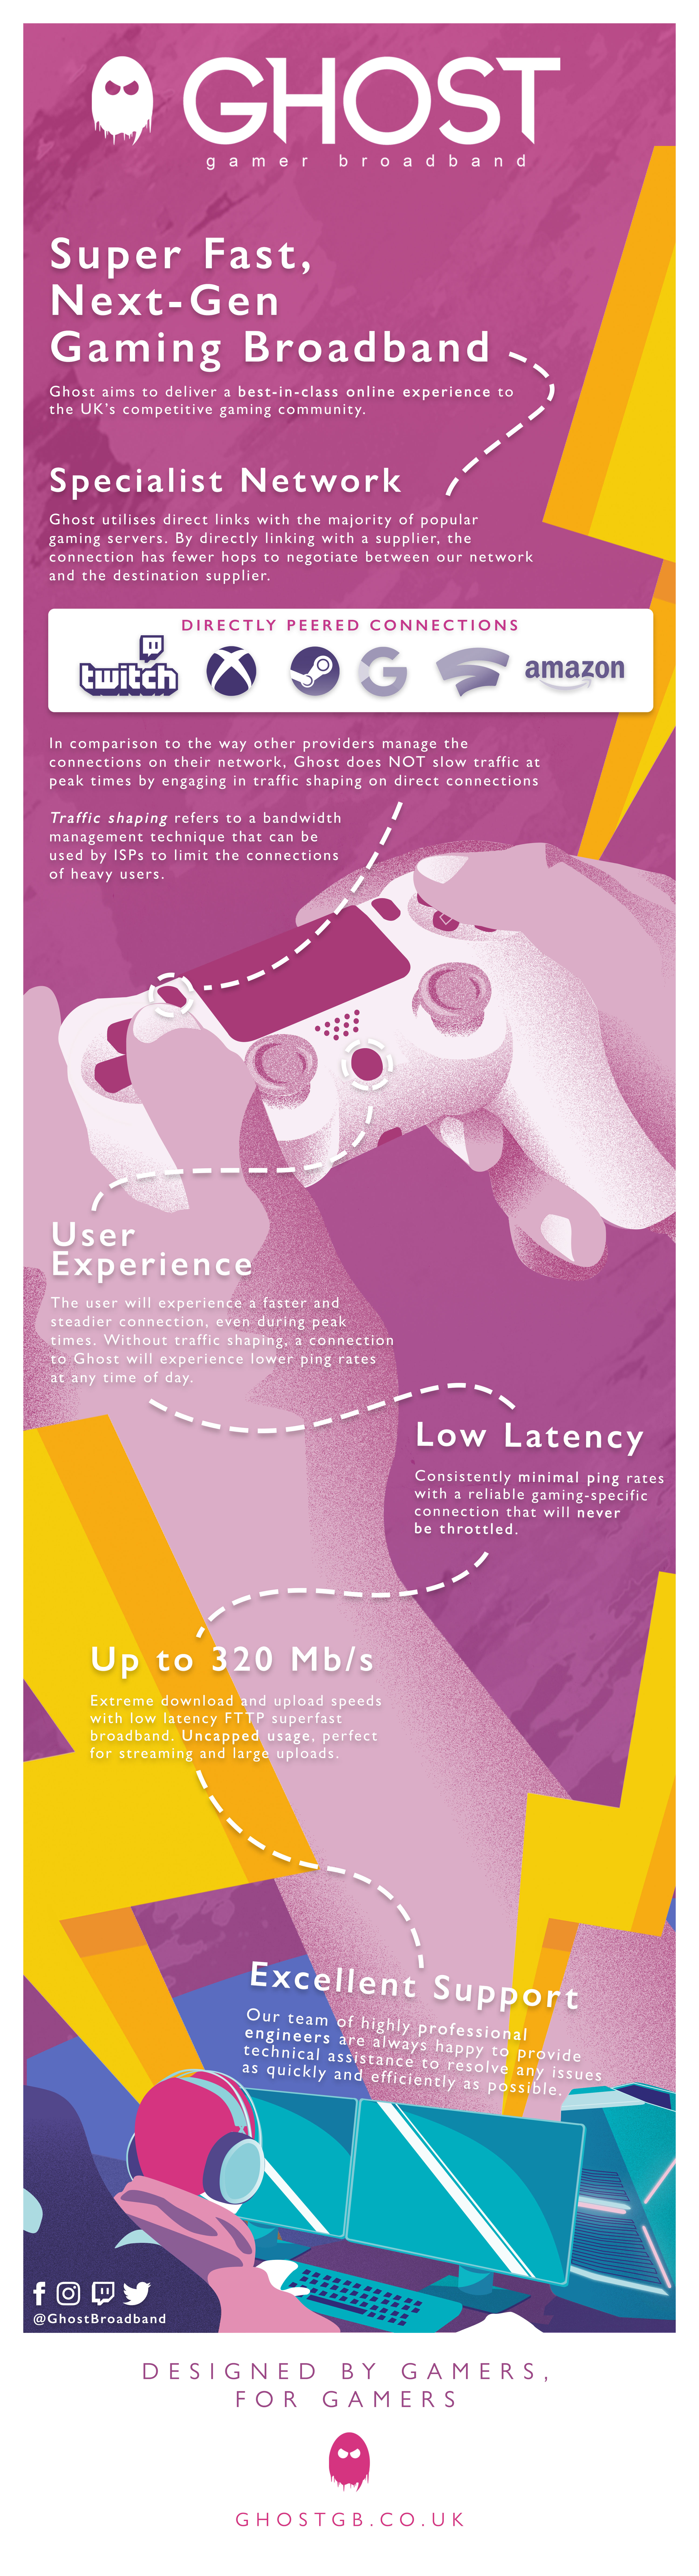 Infographic examining the benefits of Ghost Gamer Broadband specialised network connectivity for online gaming